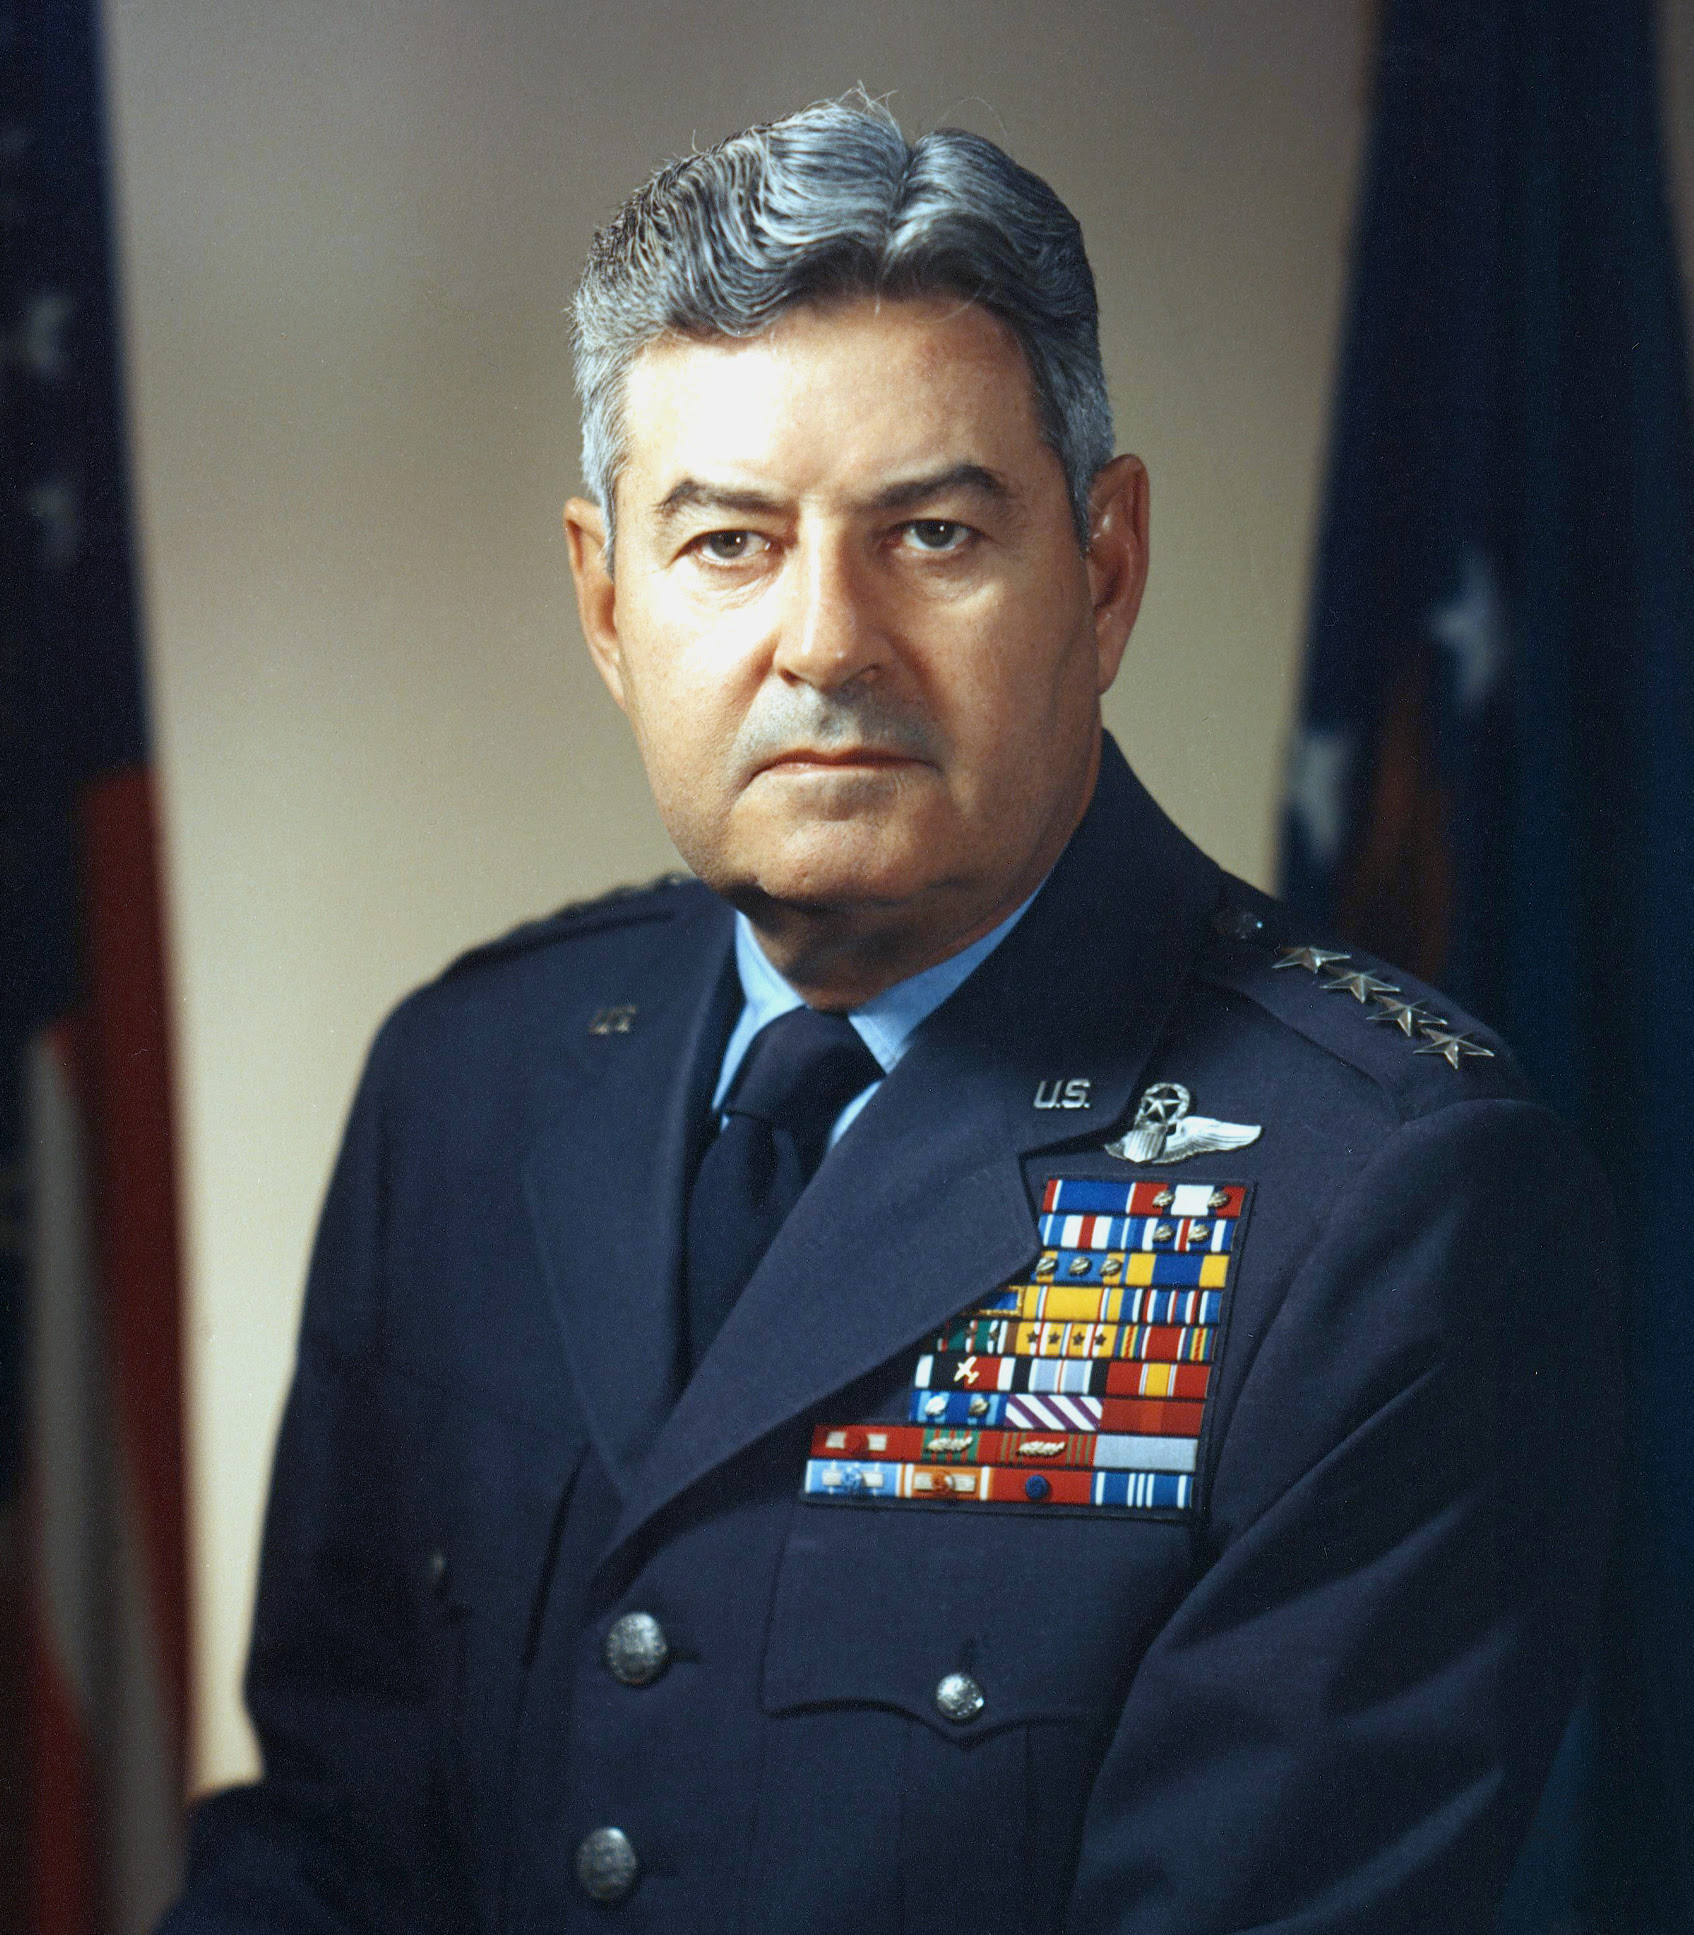 http://upload.wikimedia.org/wikipedia/commons/7/73/Curtis_LeMay_(USAF).jpg